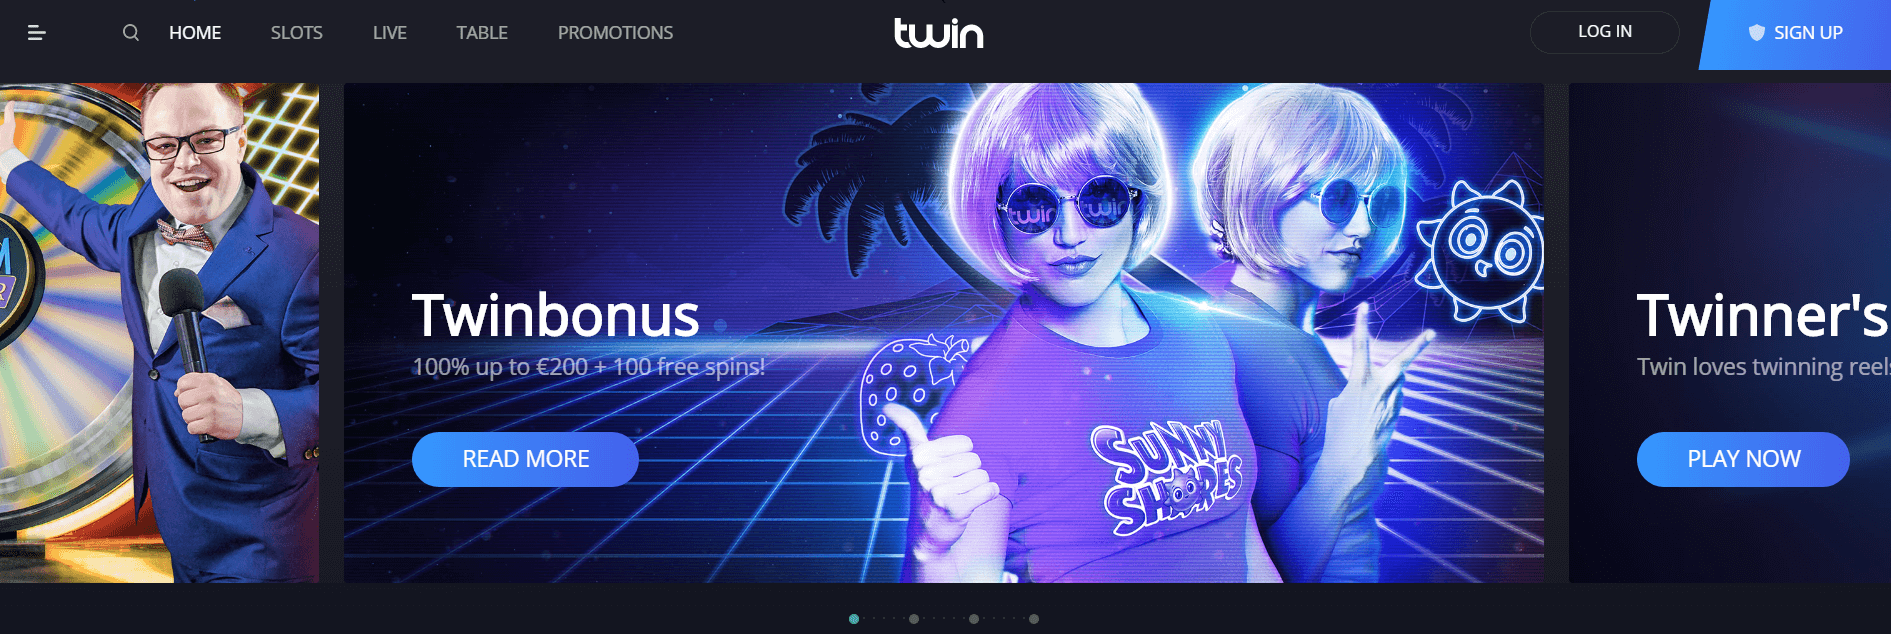 An image of twin casino homepage